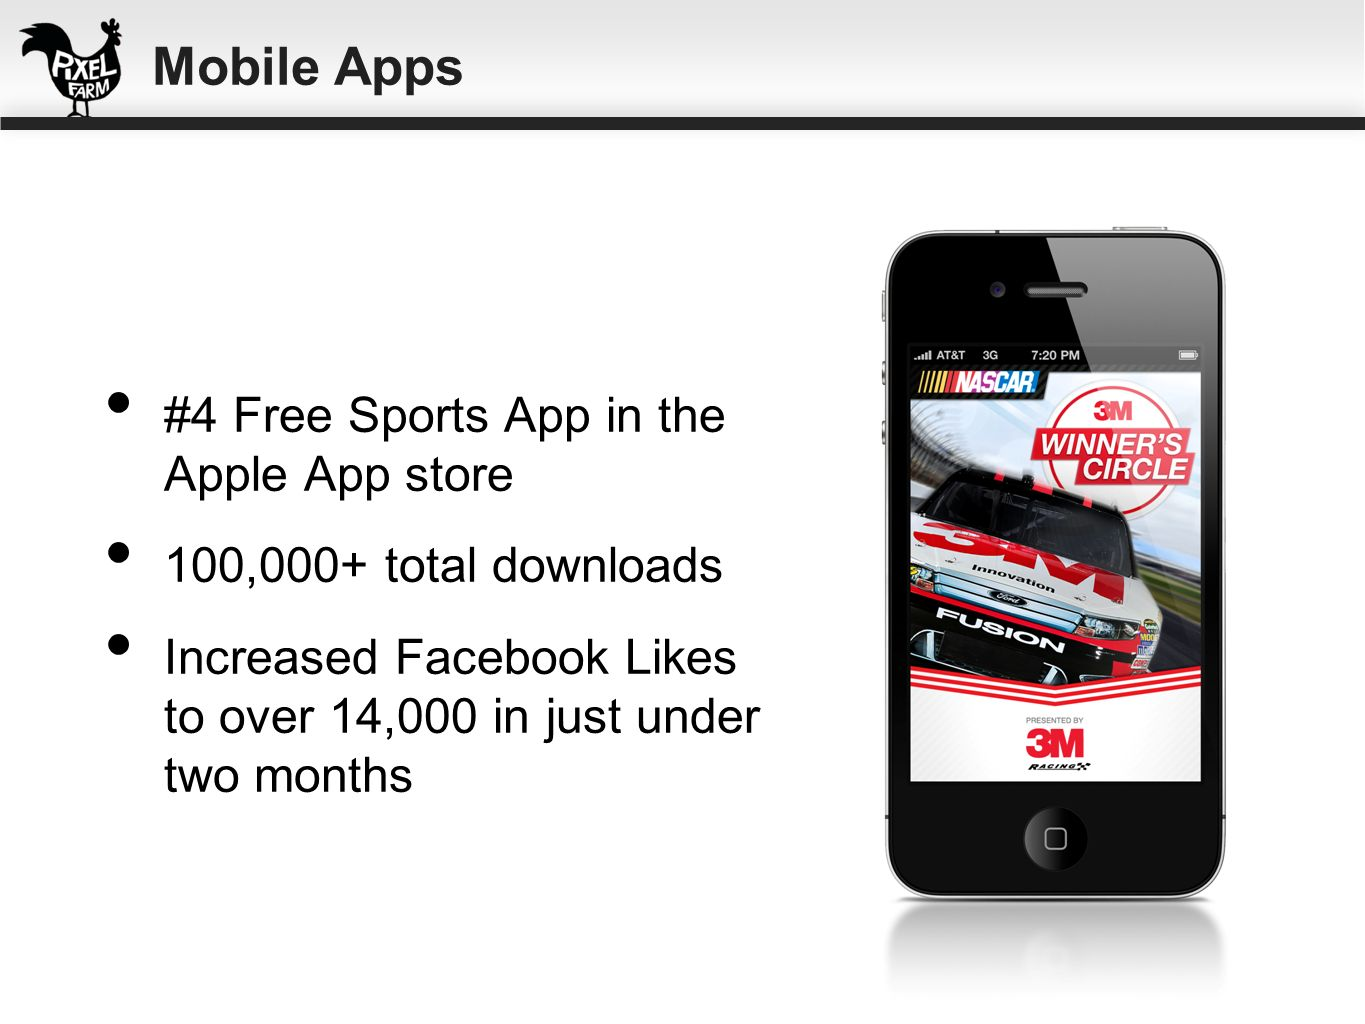 Mobile Apps #4 Free Sports App in the Apple App store